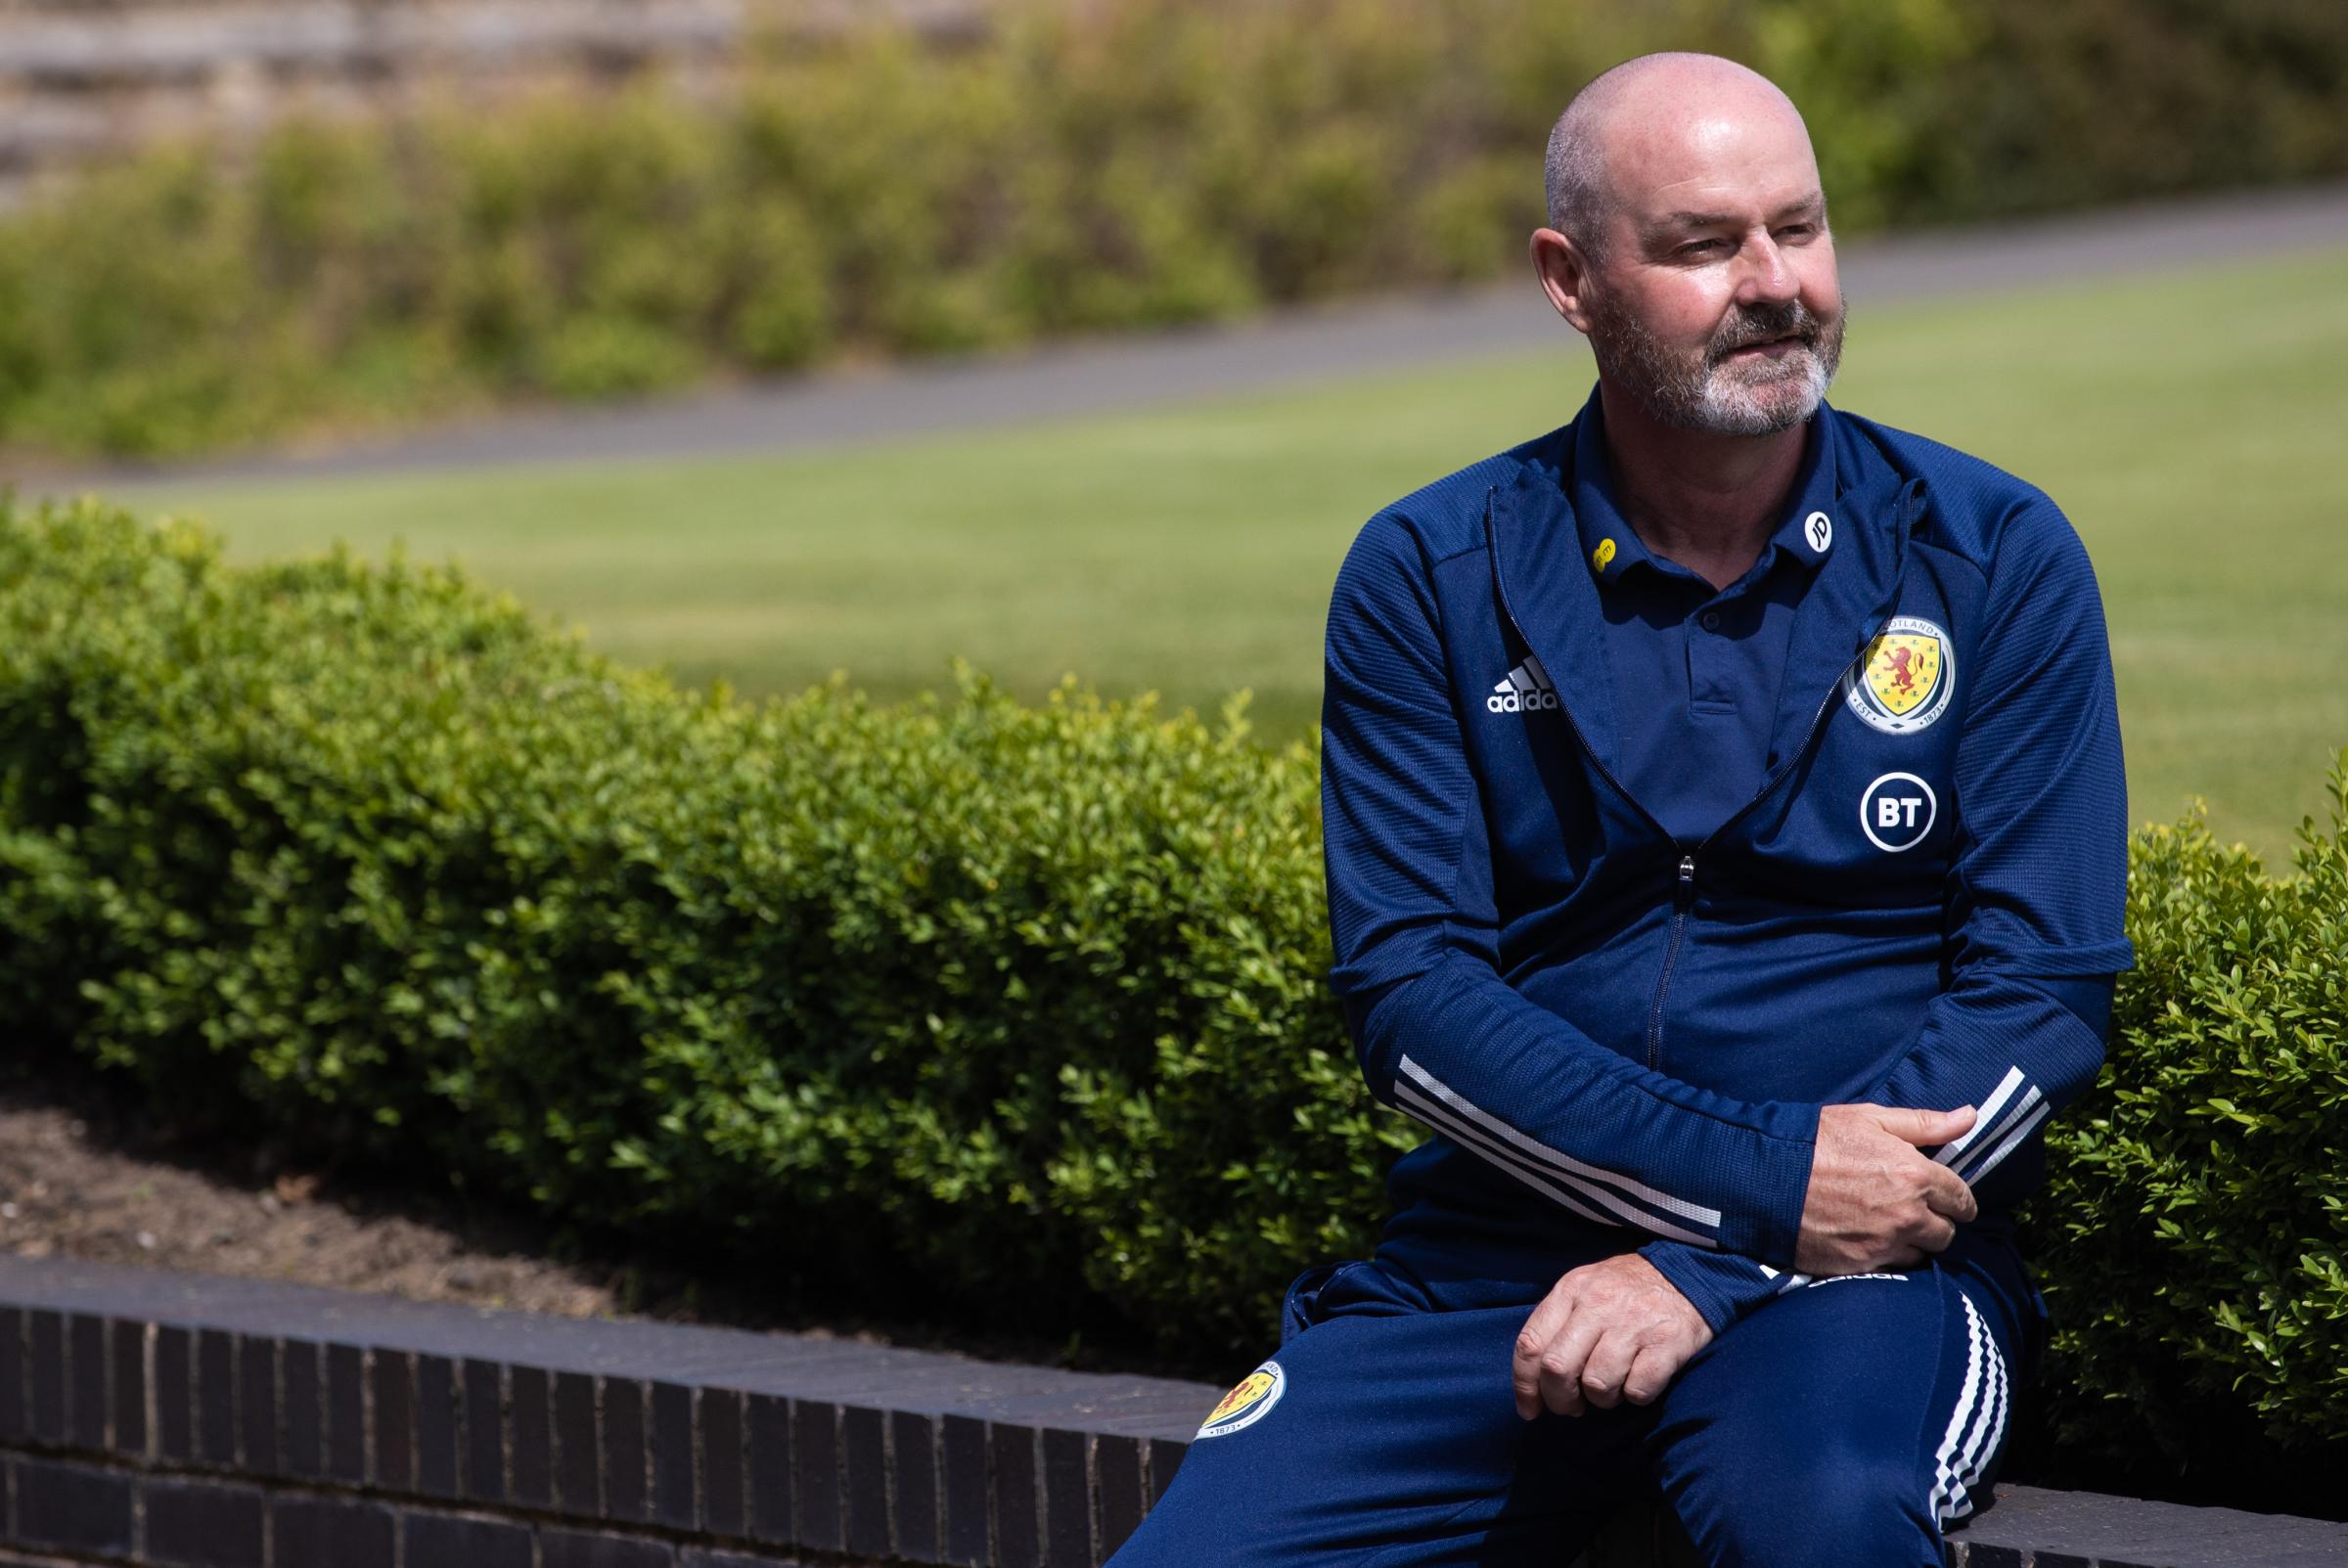 Euro 2020: Steve Clarke gives me hope after 23 years in the desert. But it's always the hope that kills you